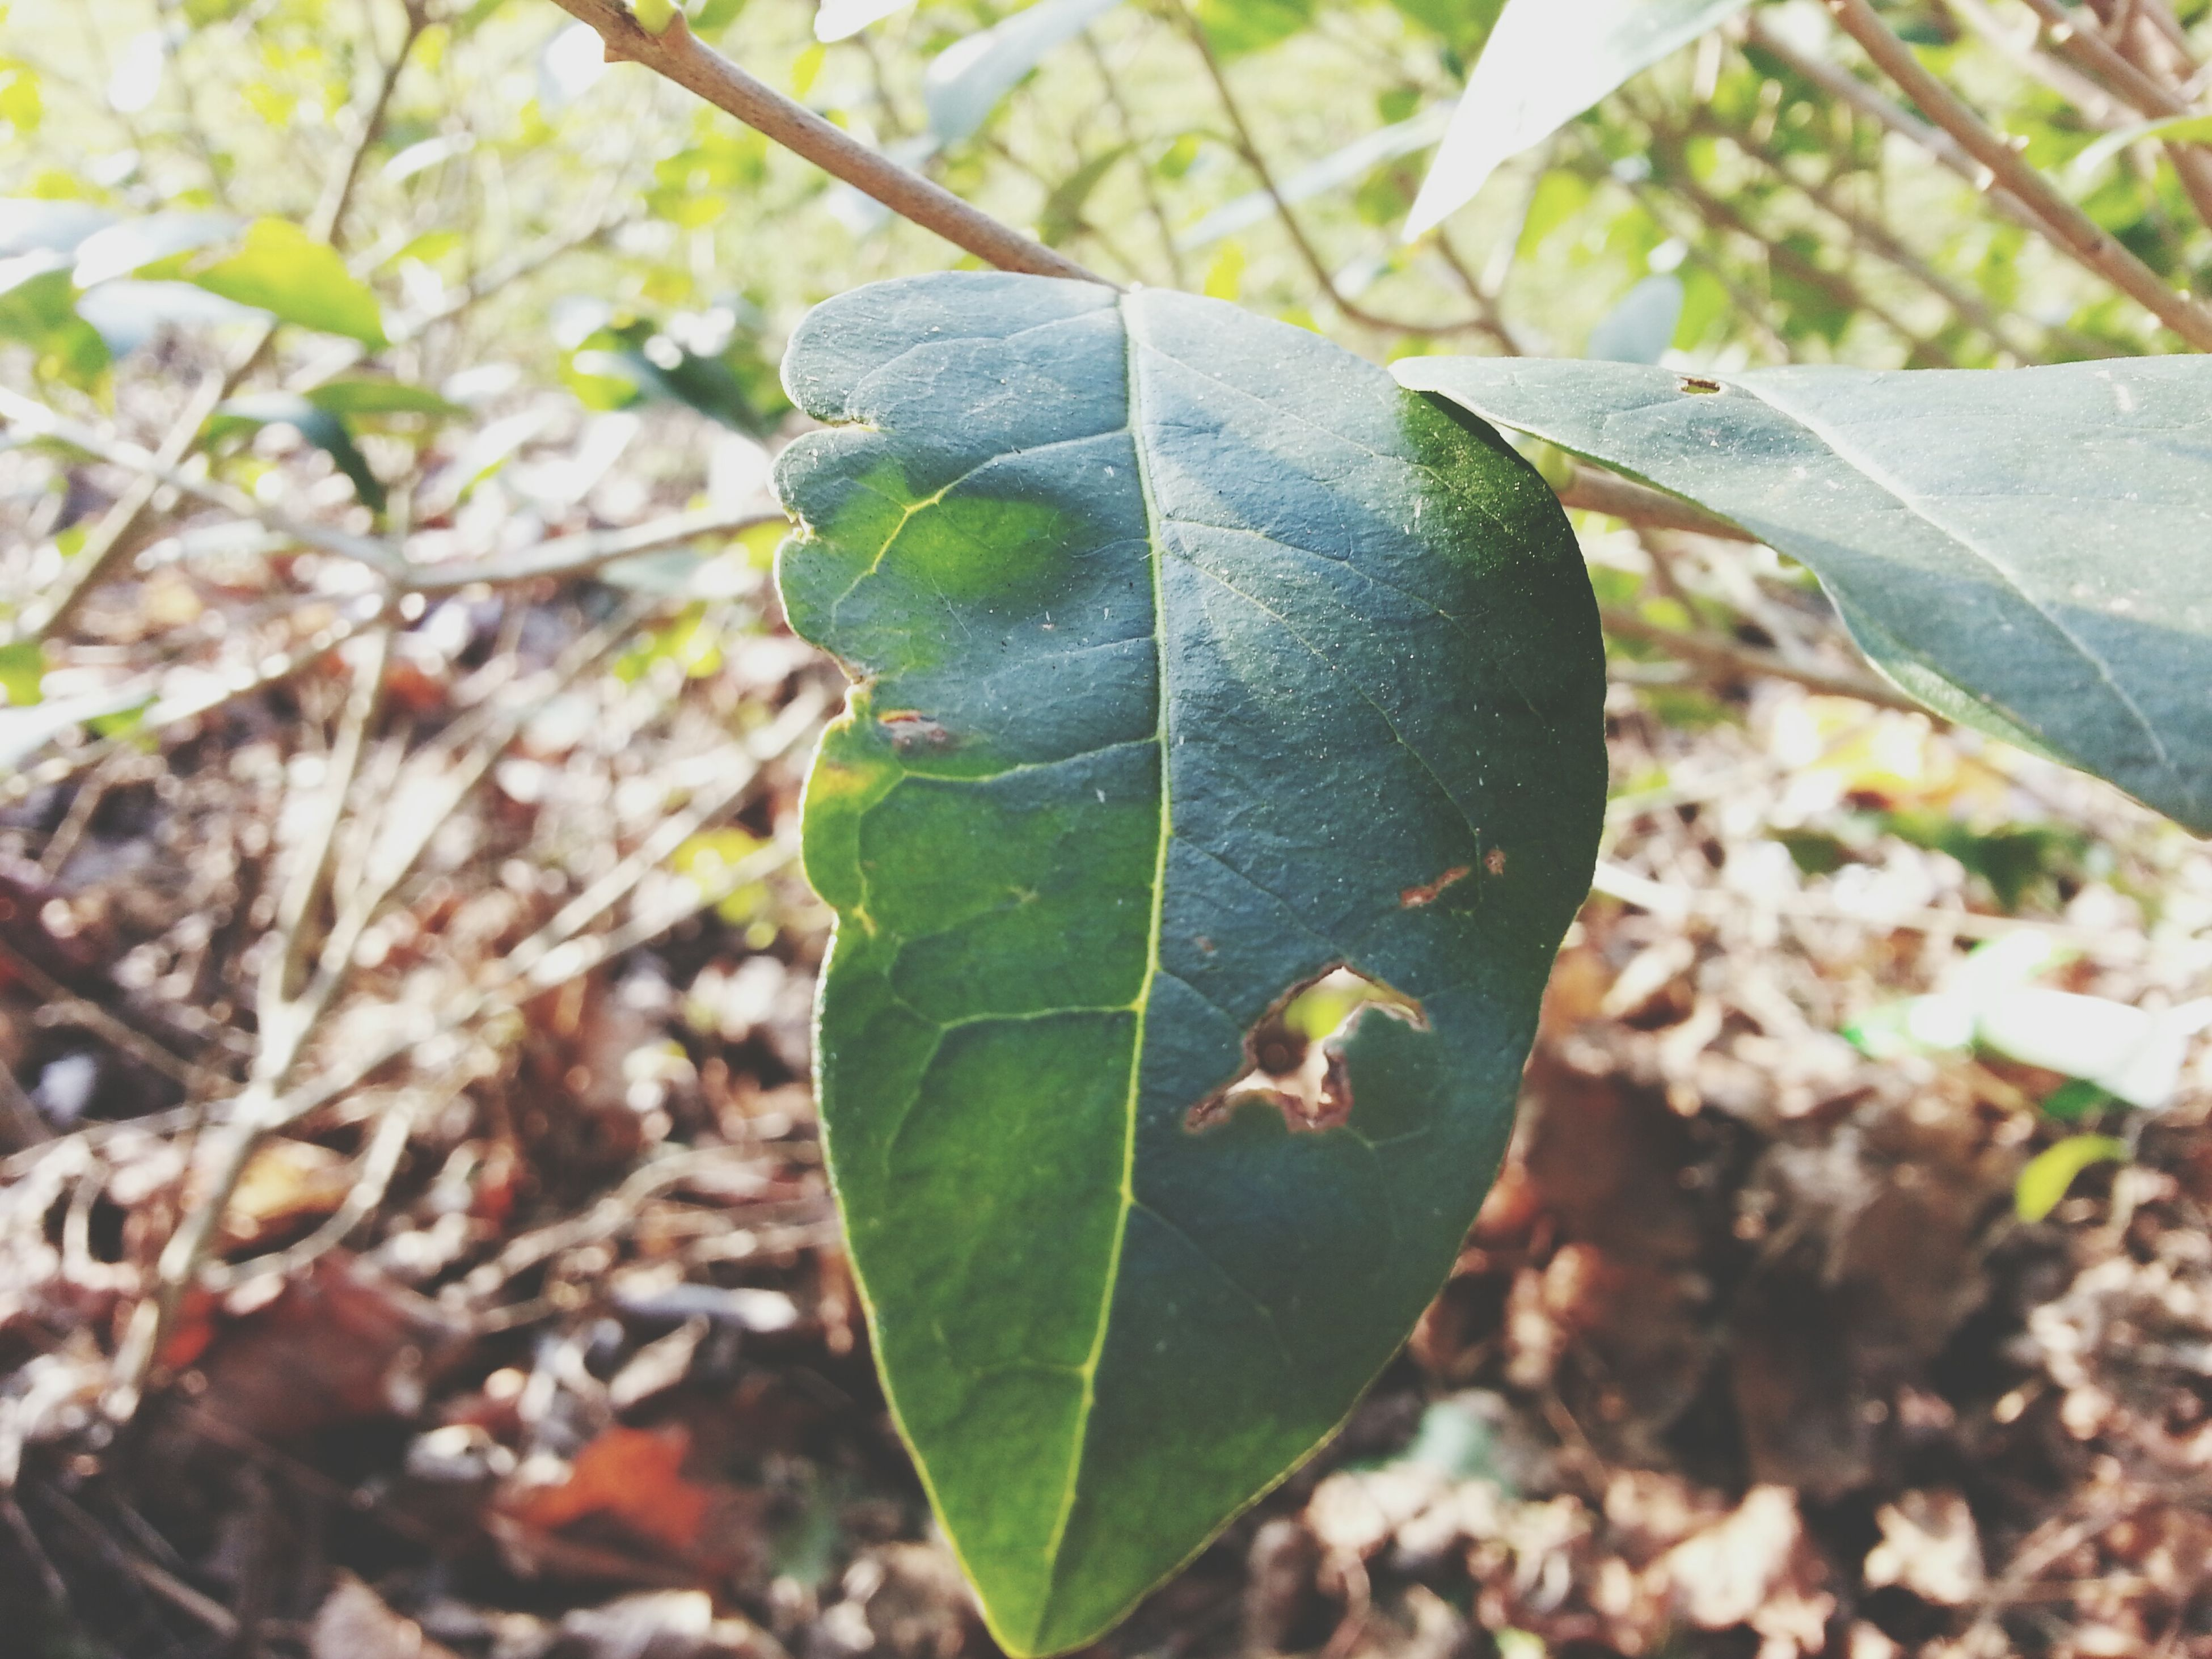 leaf, close-up, leaf vein, focus on foreground, leaves, nature, season, autumn, selective focus, dry, day, change, growth, green color, natural pattern, outdoors, no people, plant, fragility, beauty in nature